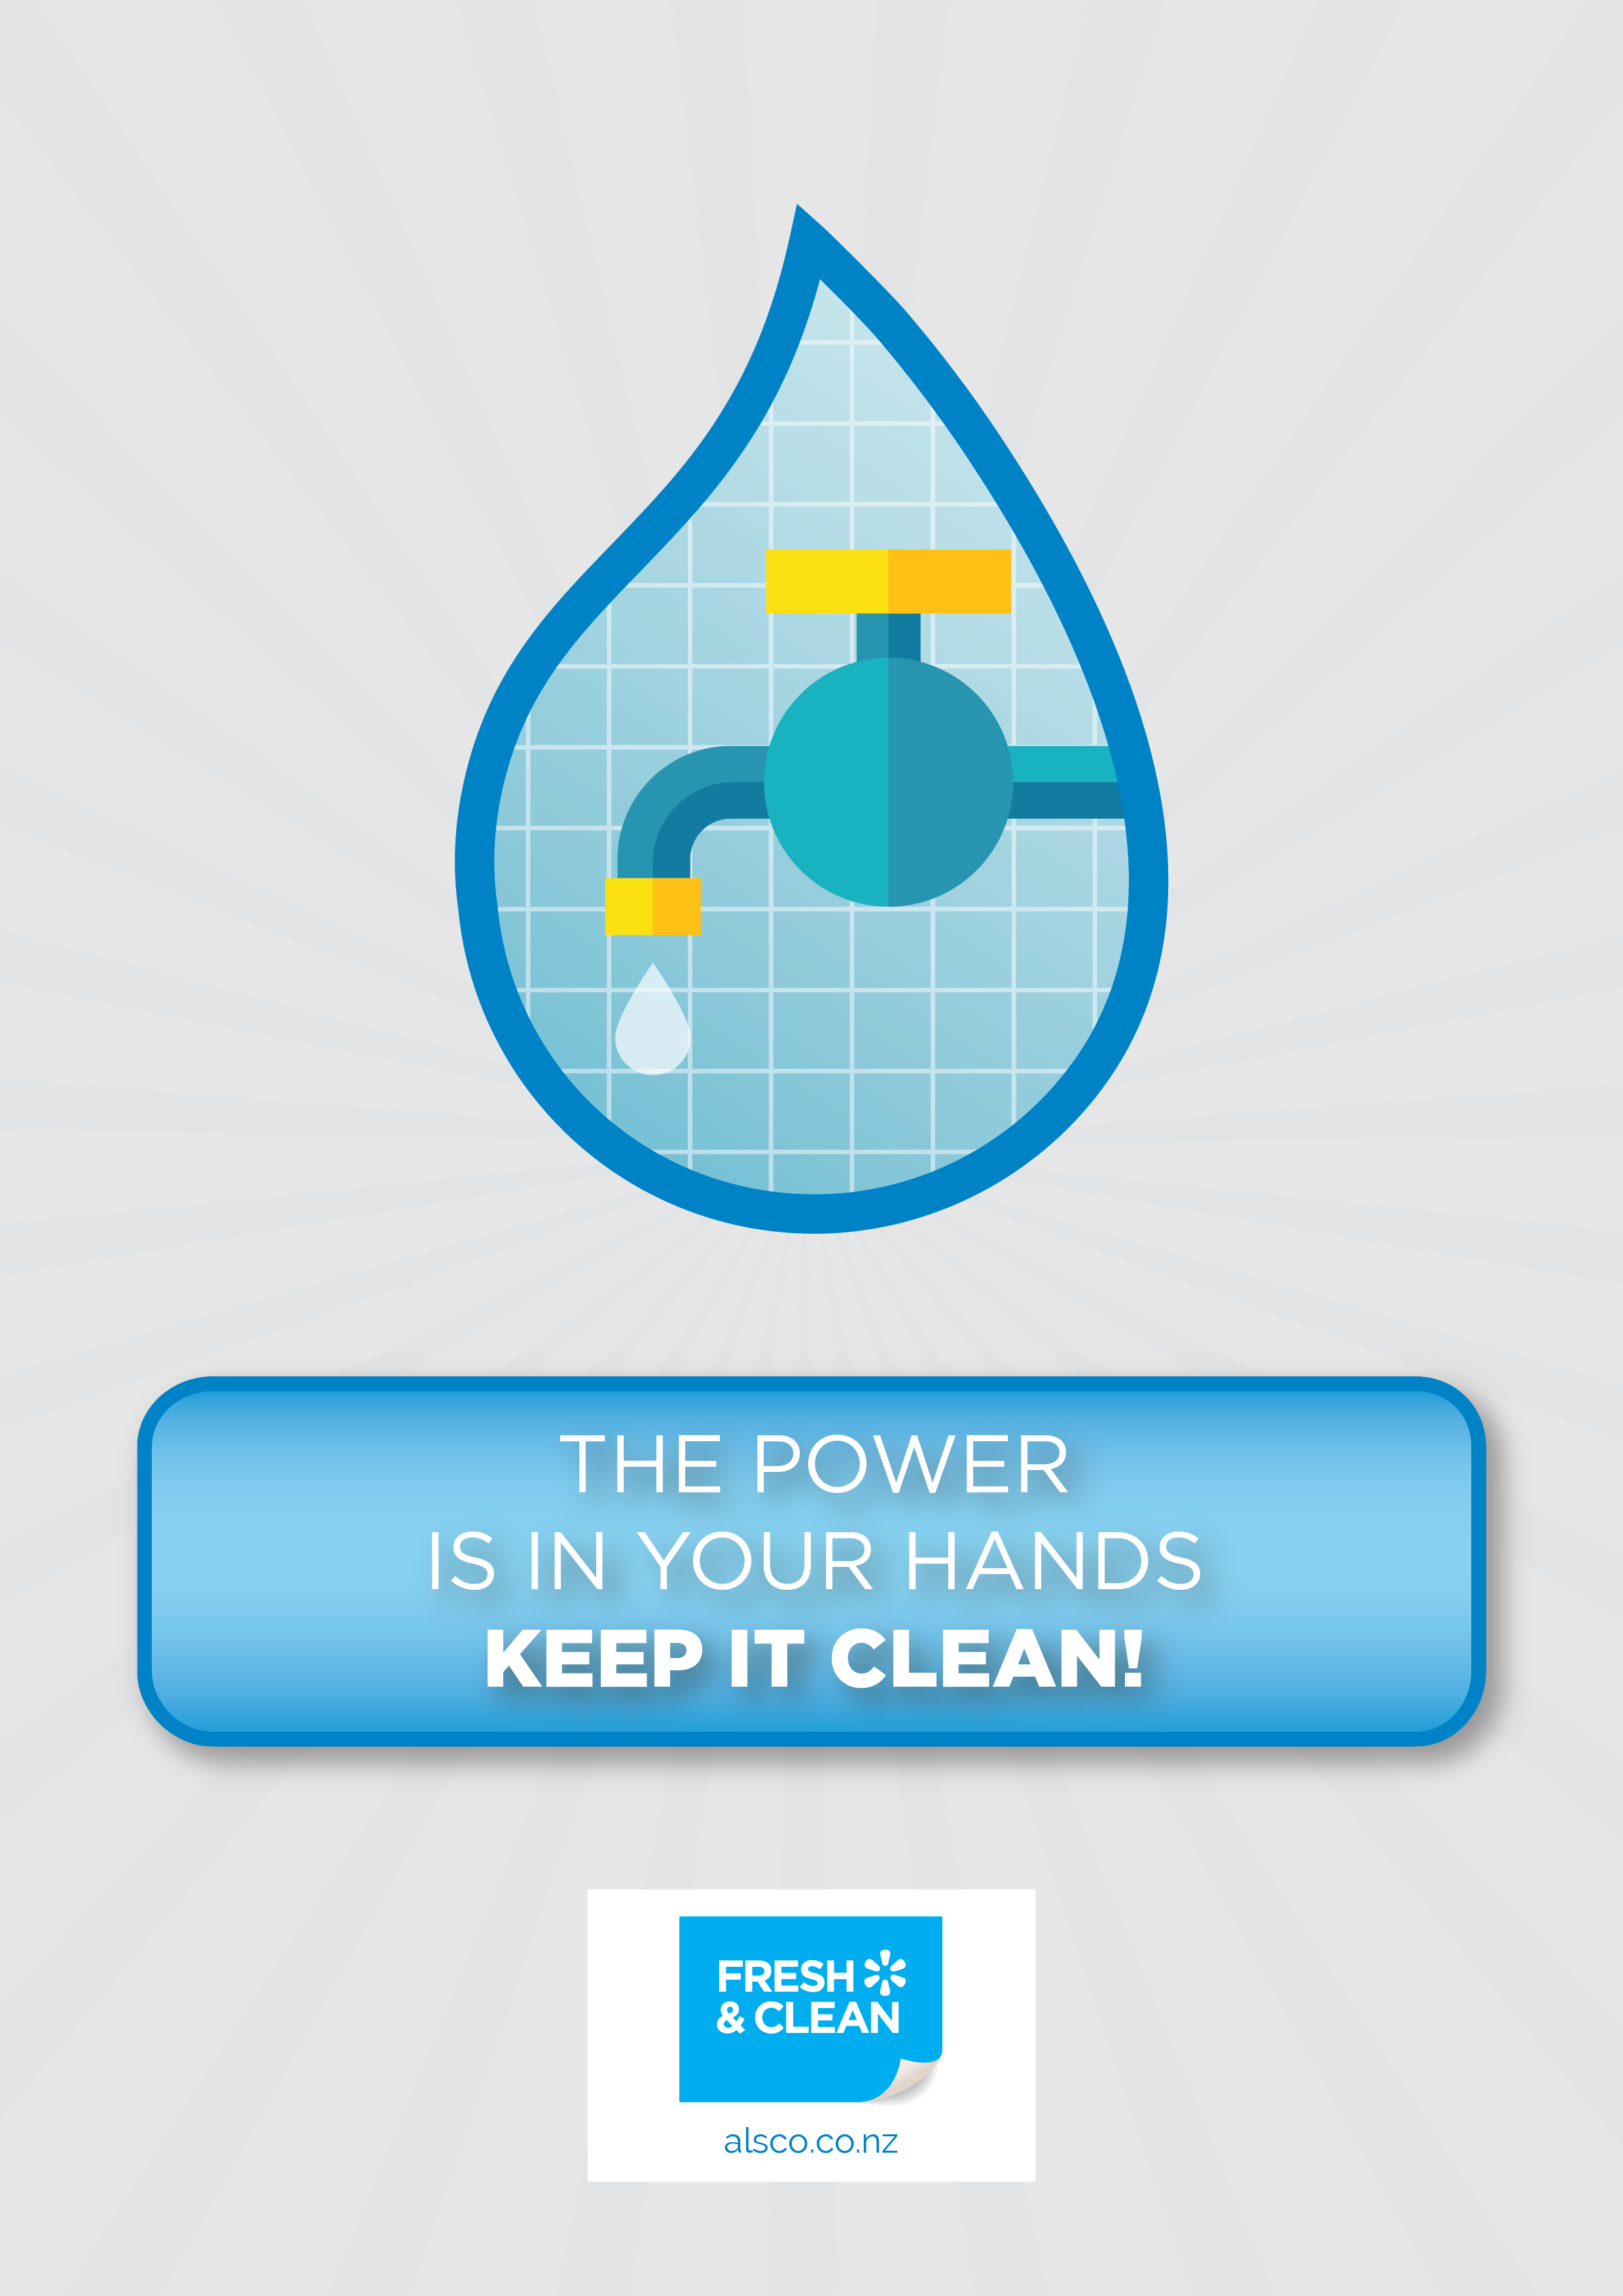 The power is in your hands. Keep it clean